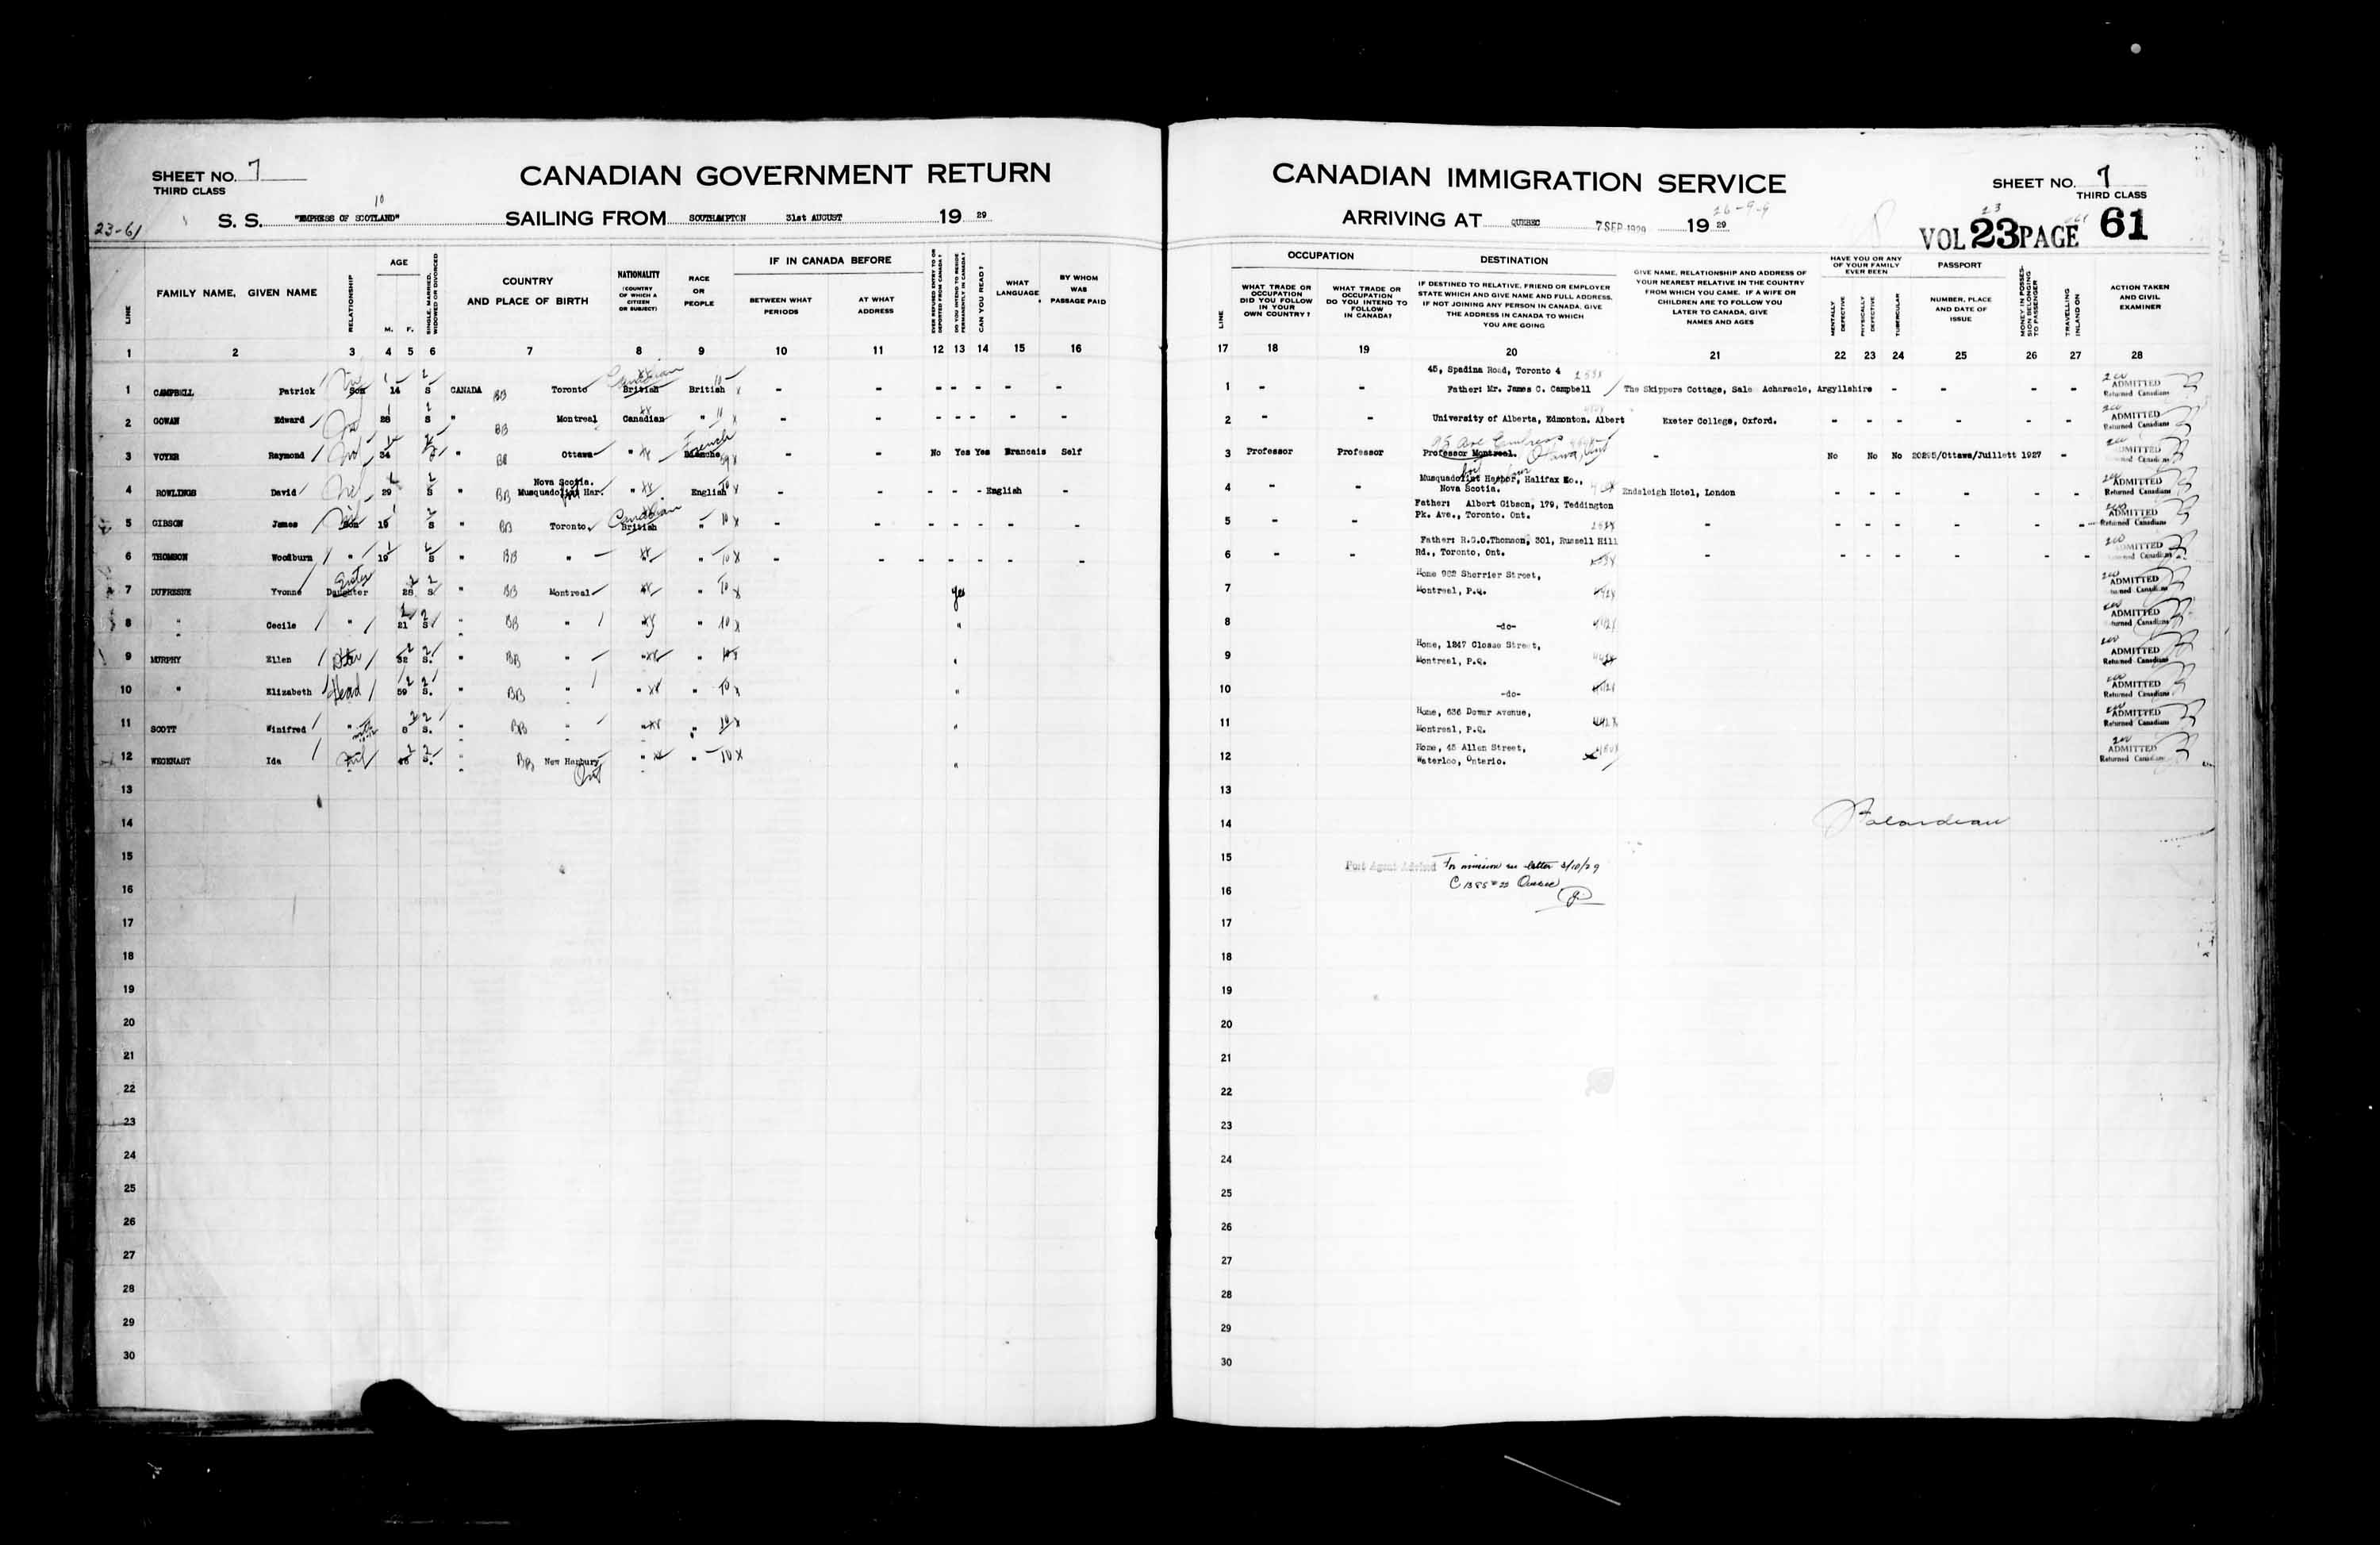 Title: Passenger Lists: Quebec City (1925-1935) - Mikan Number: 134839 - Microform: t-14758